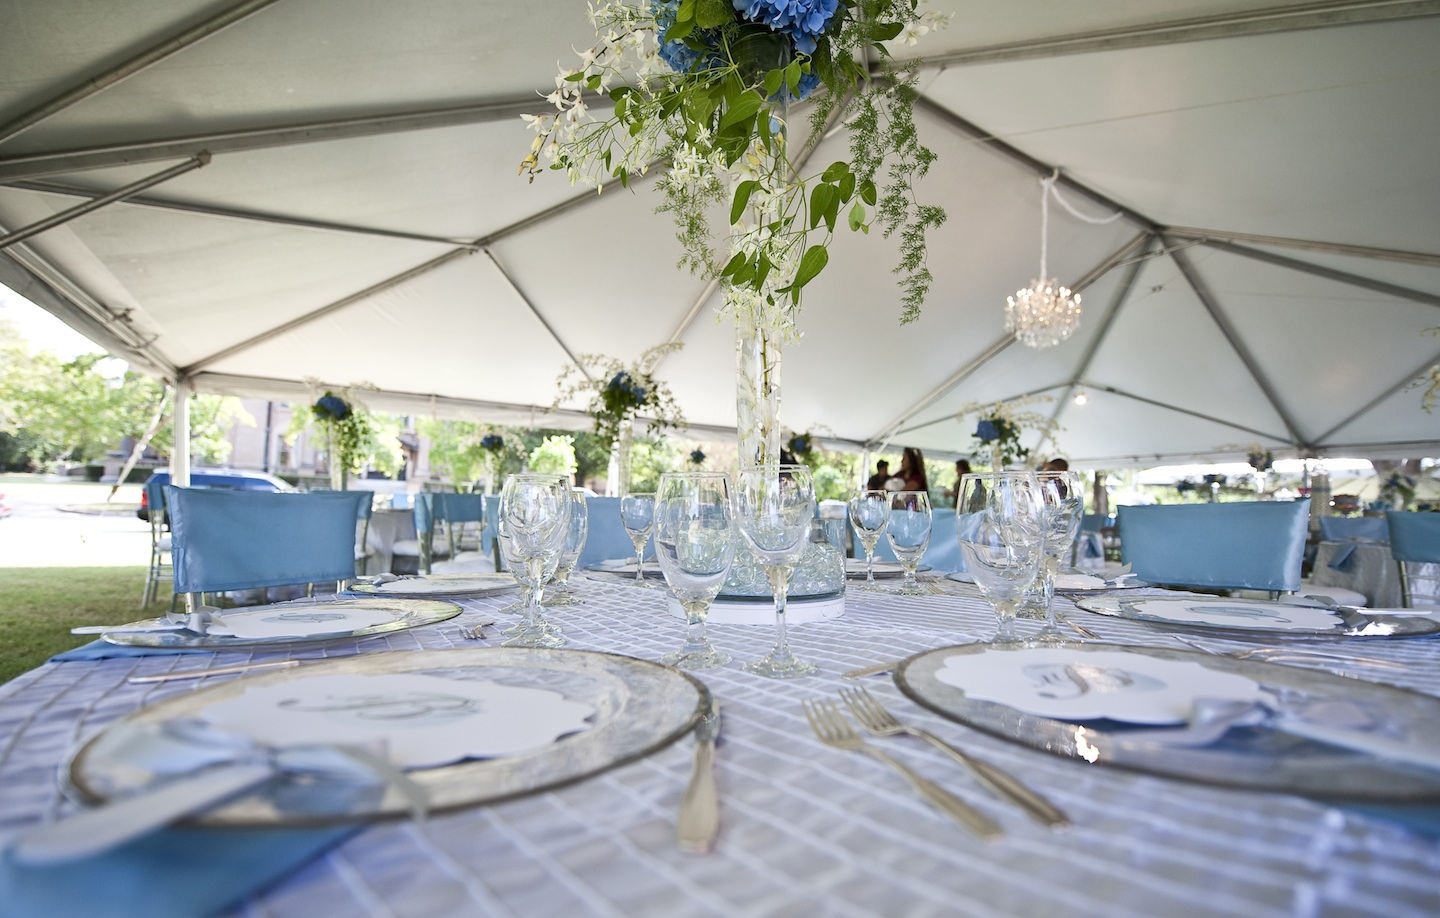 Elegant-fall-wedding-outdoor-tented-reception-sky-blue-ivory-green.original